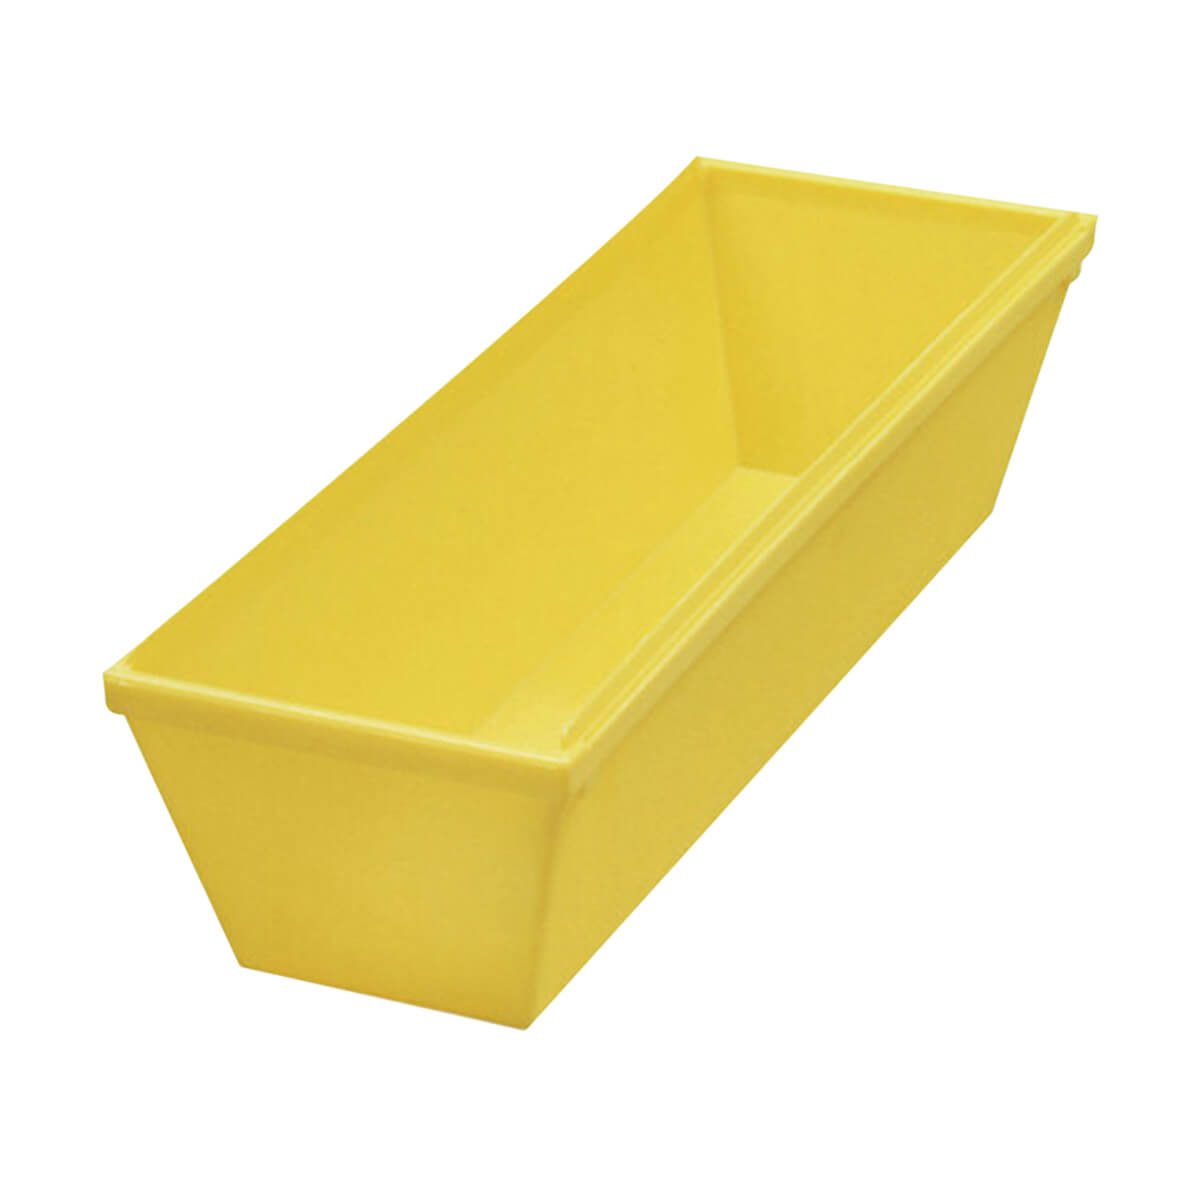 12'' Plastic Mud Pan